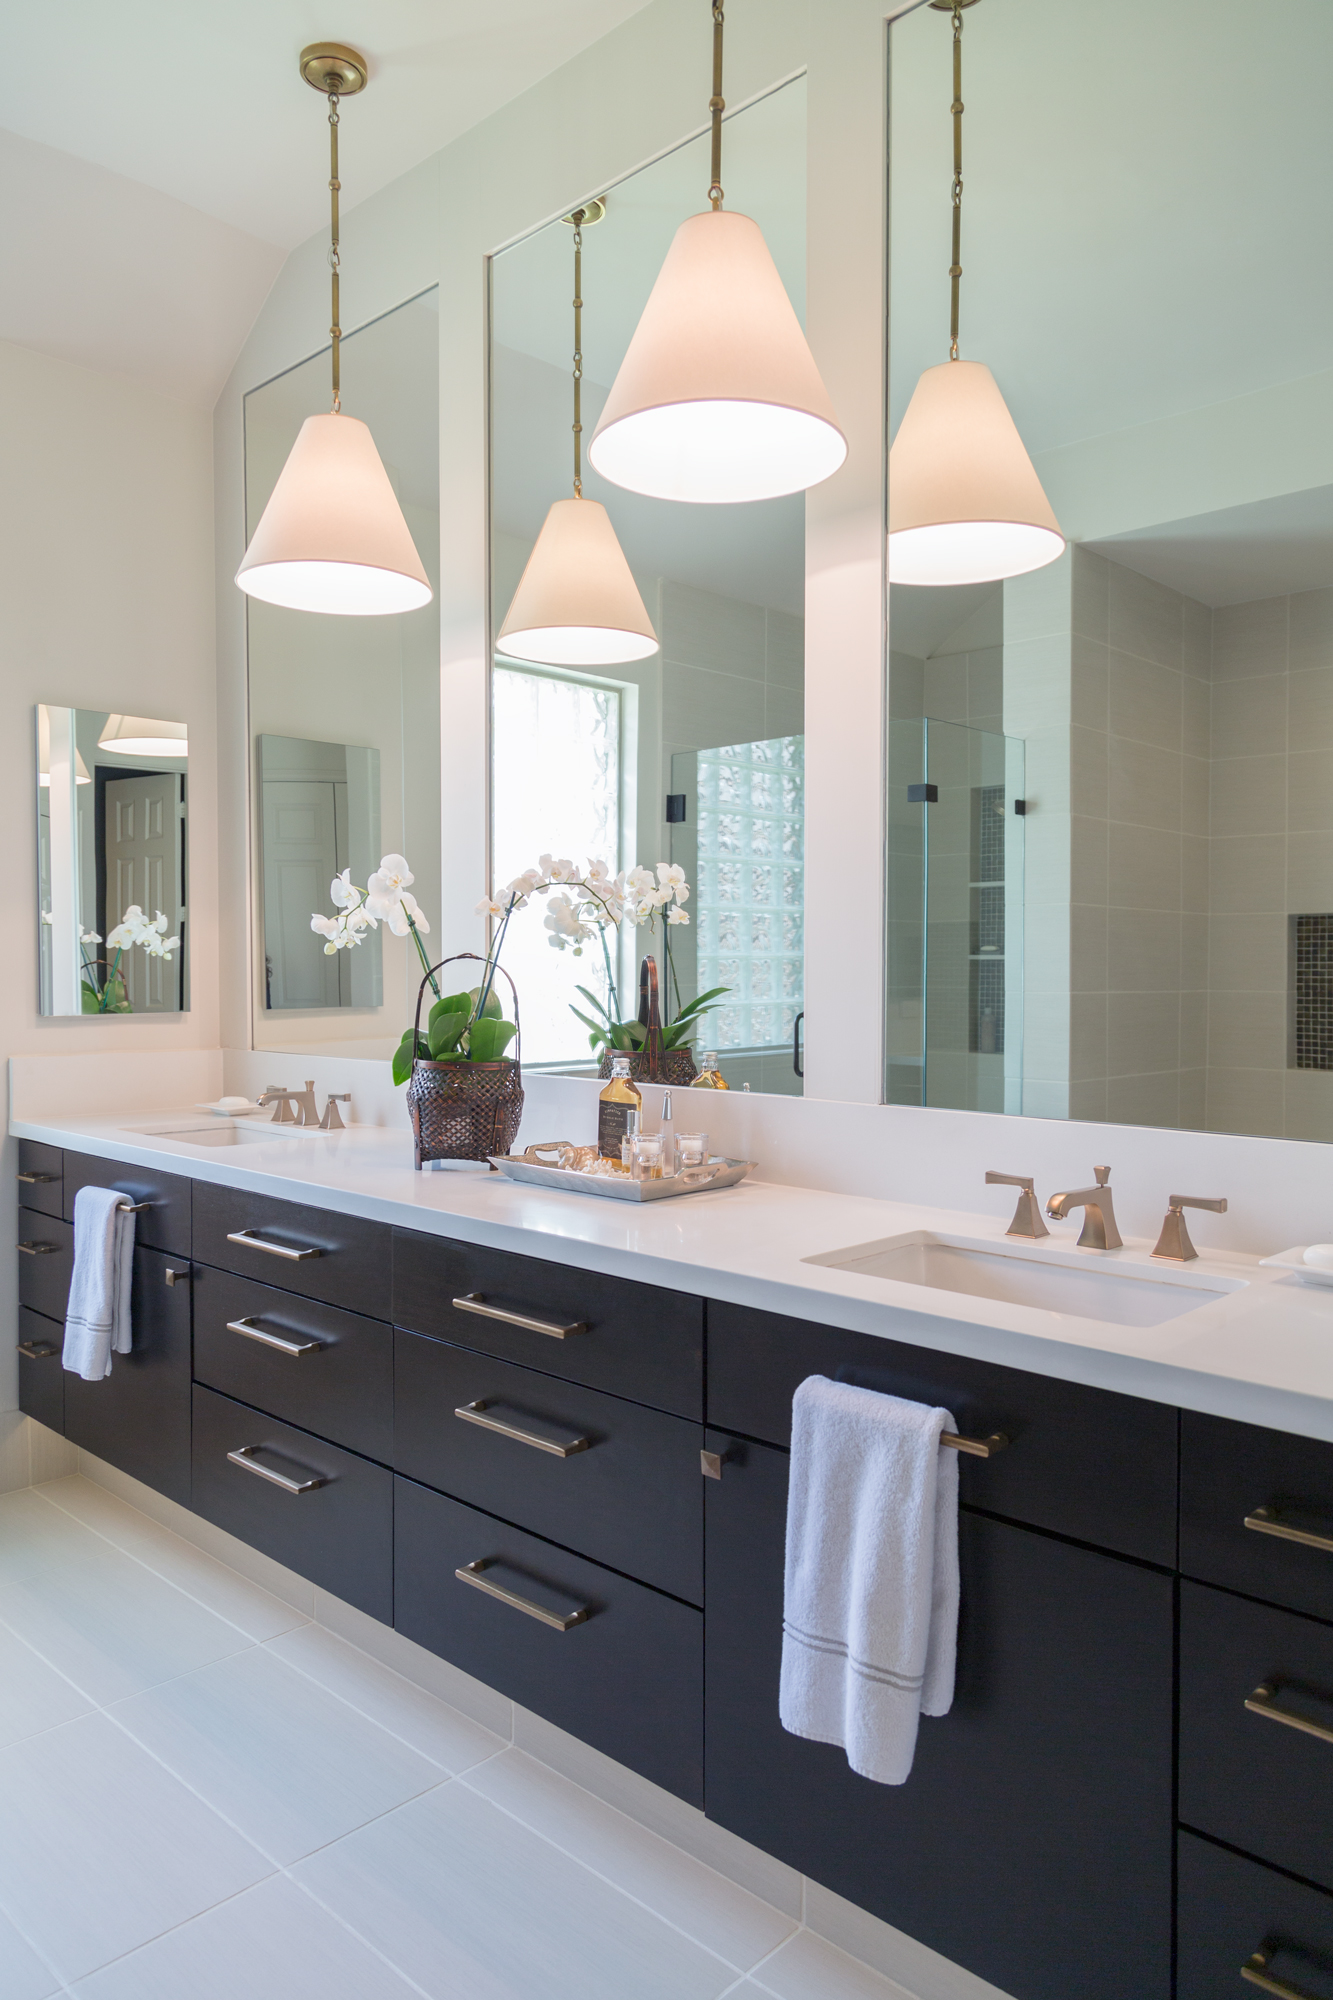 Quartz countertops in contemporary bathroom remodel - Designer: Carla Aston, Photo by Tori Aston #quartzcountertop #bathroomremodel #contemporarybathroom #floatingvanity